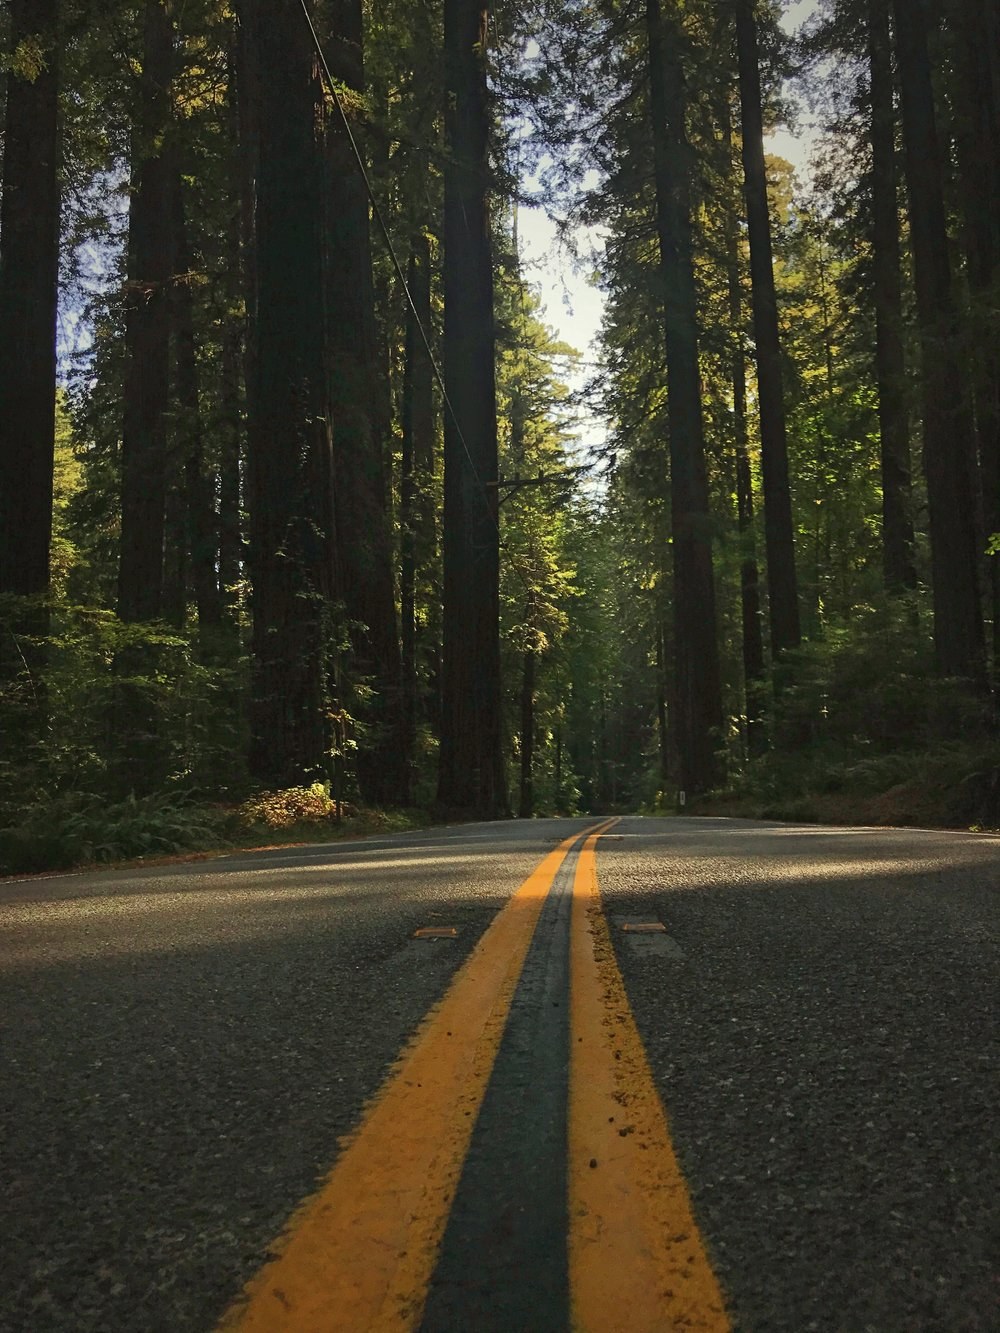 The Avenue of Giants is definitely a classic road trip experience.